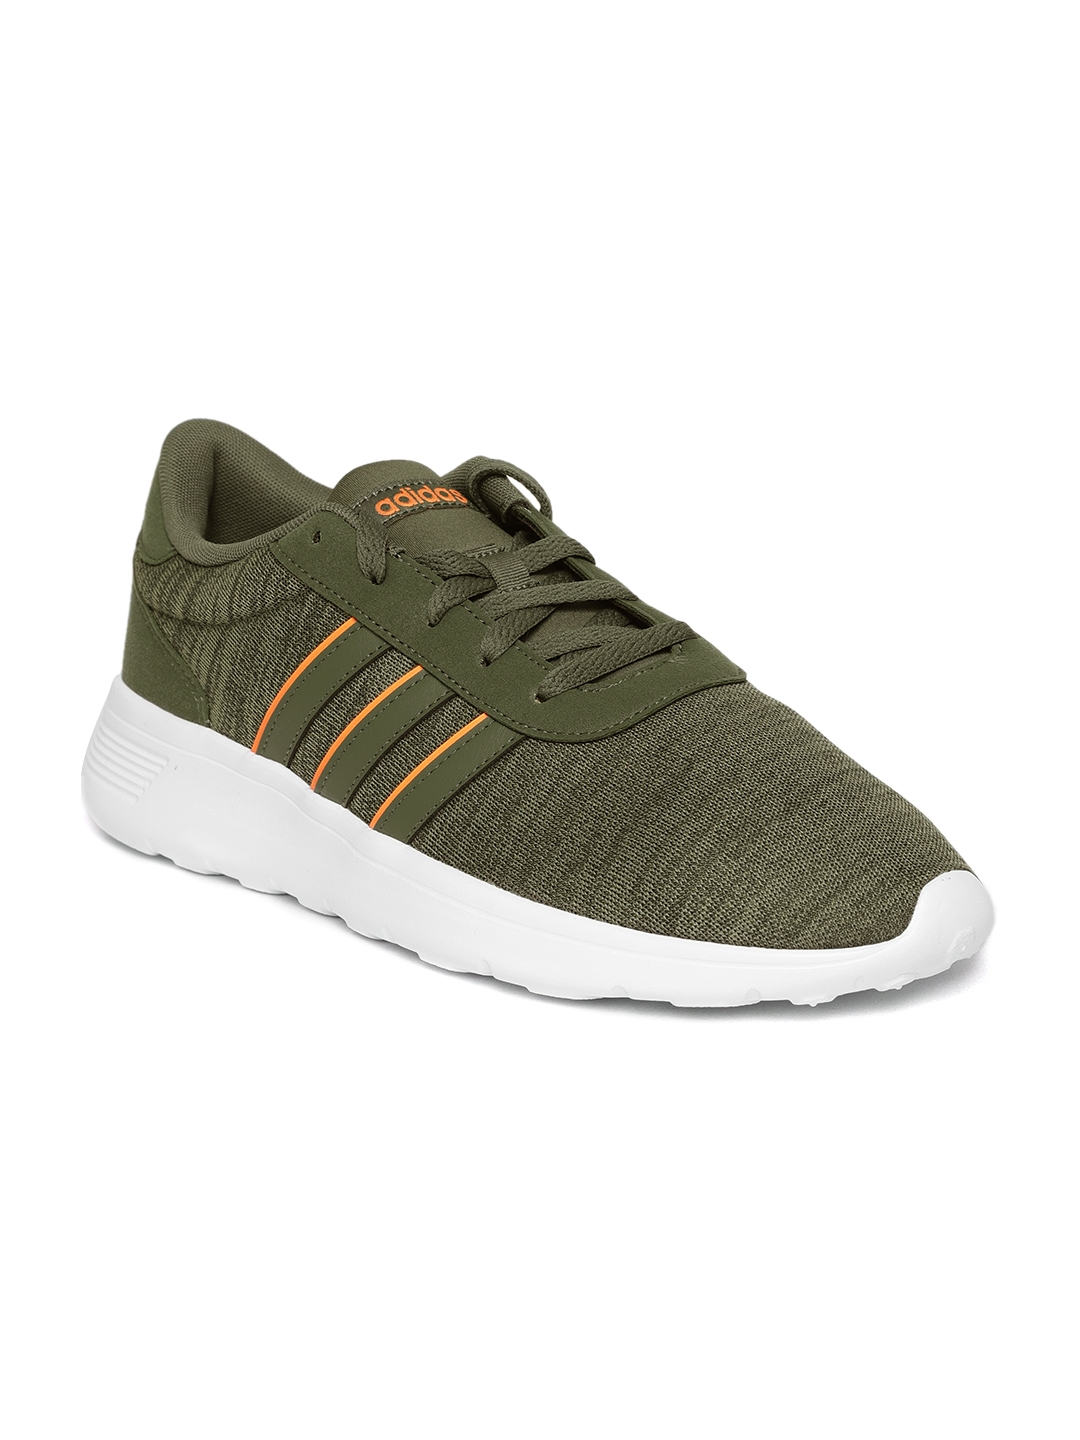 a9018dab5a1 Buy Adidas Men Olive Green Lite Racer Running Shoes - Sports Shoes ...